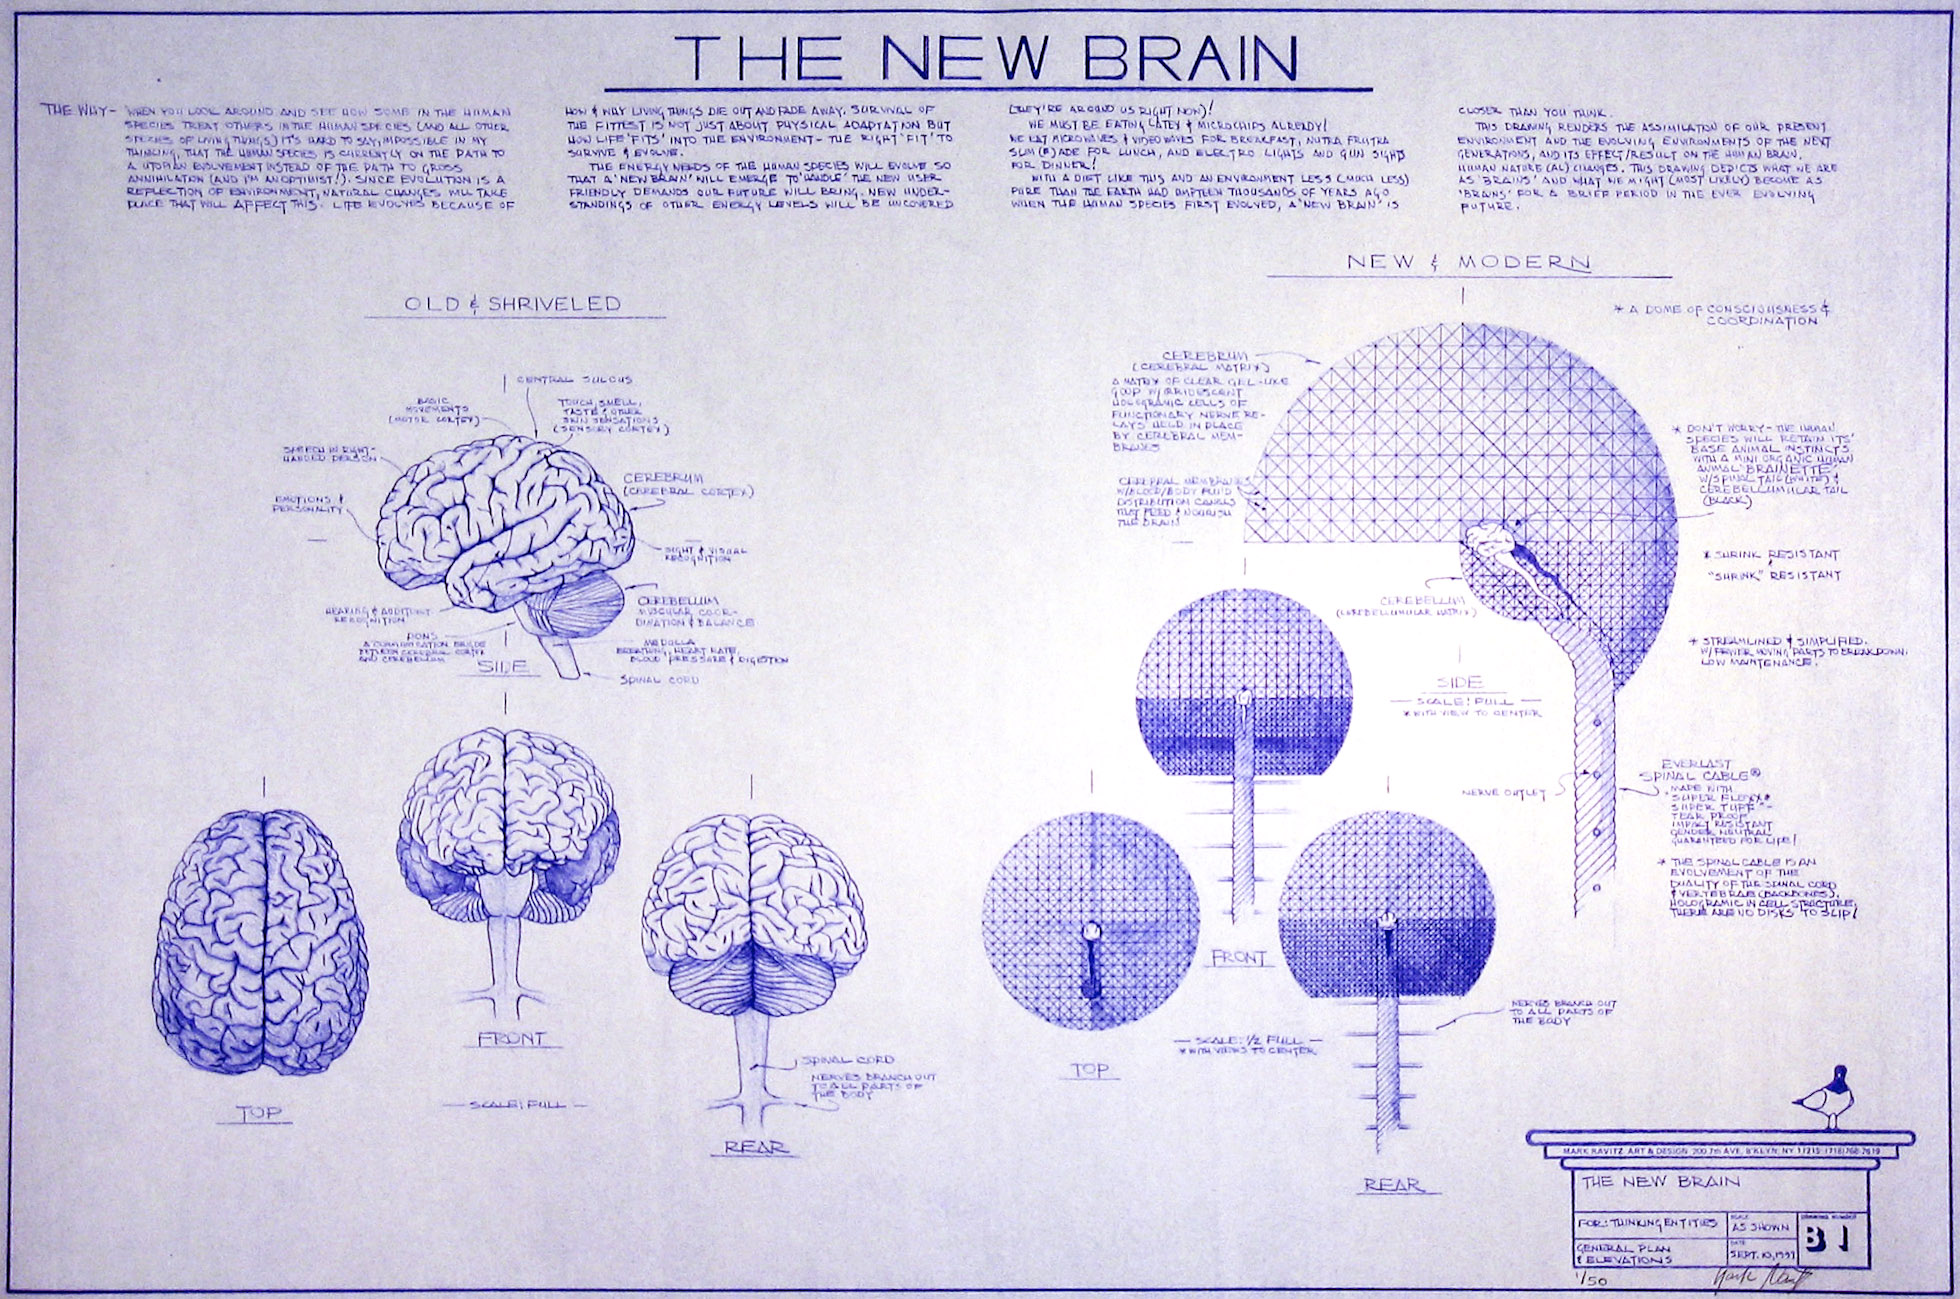 Drawn brains blueprint New Drawings Blueprint & Drawings